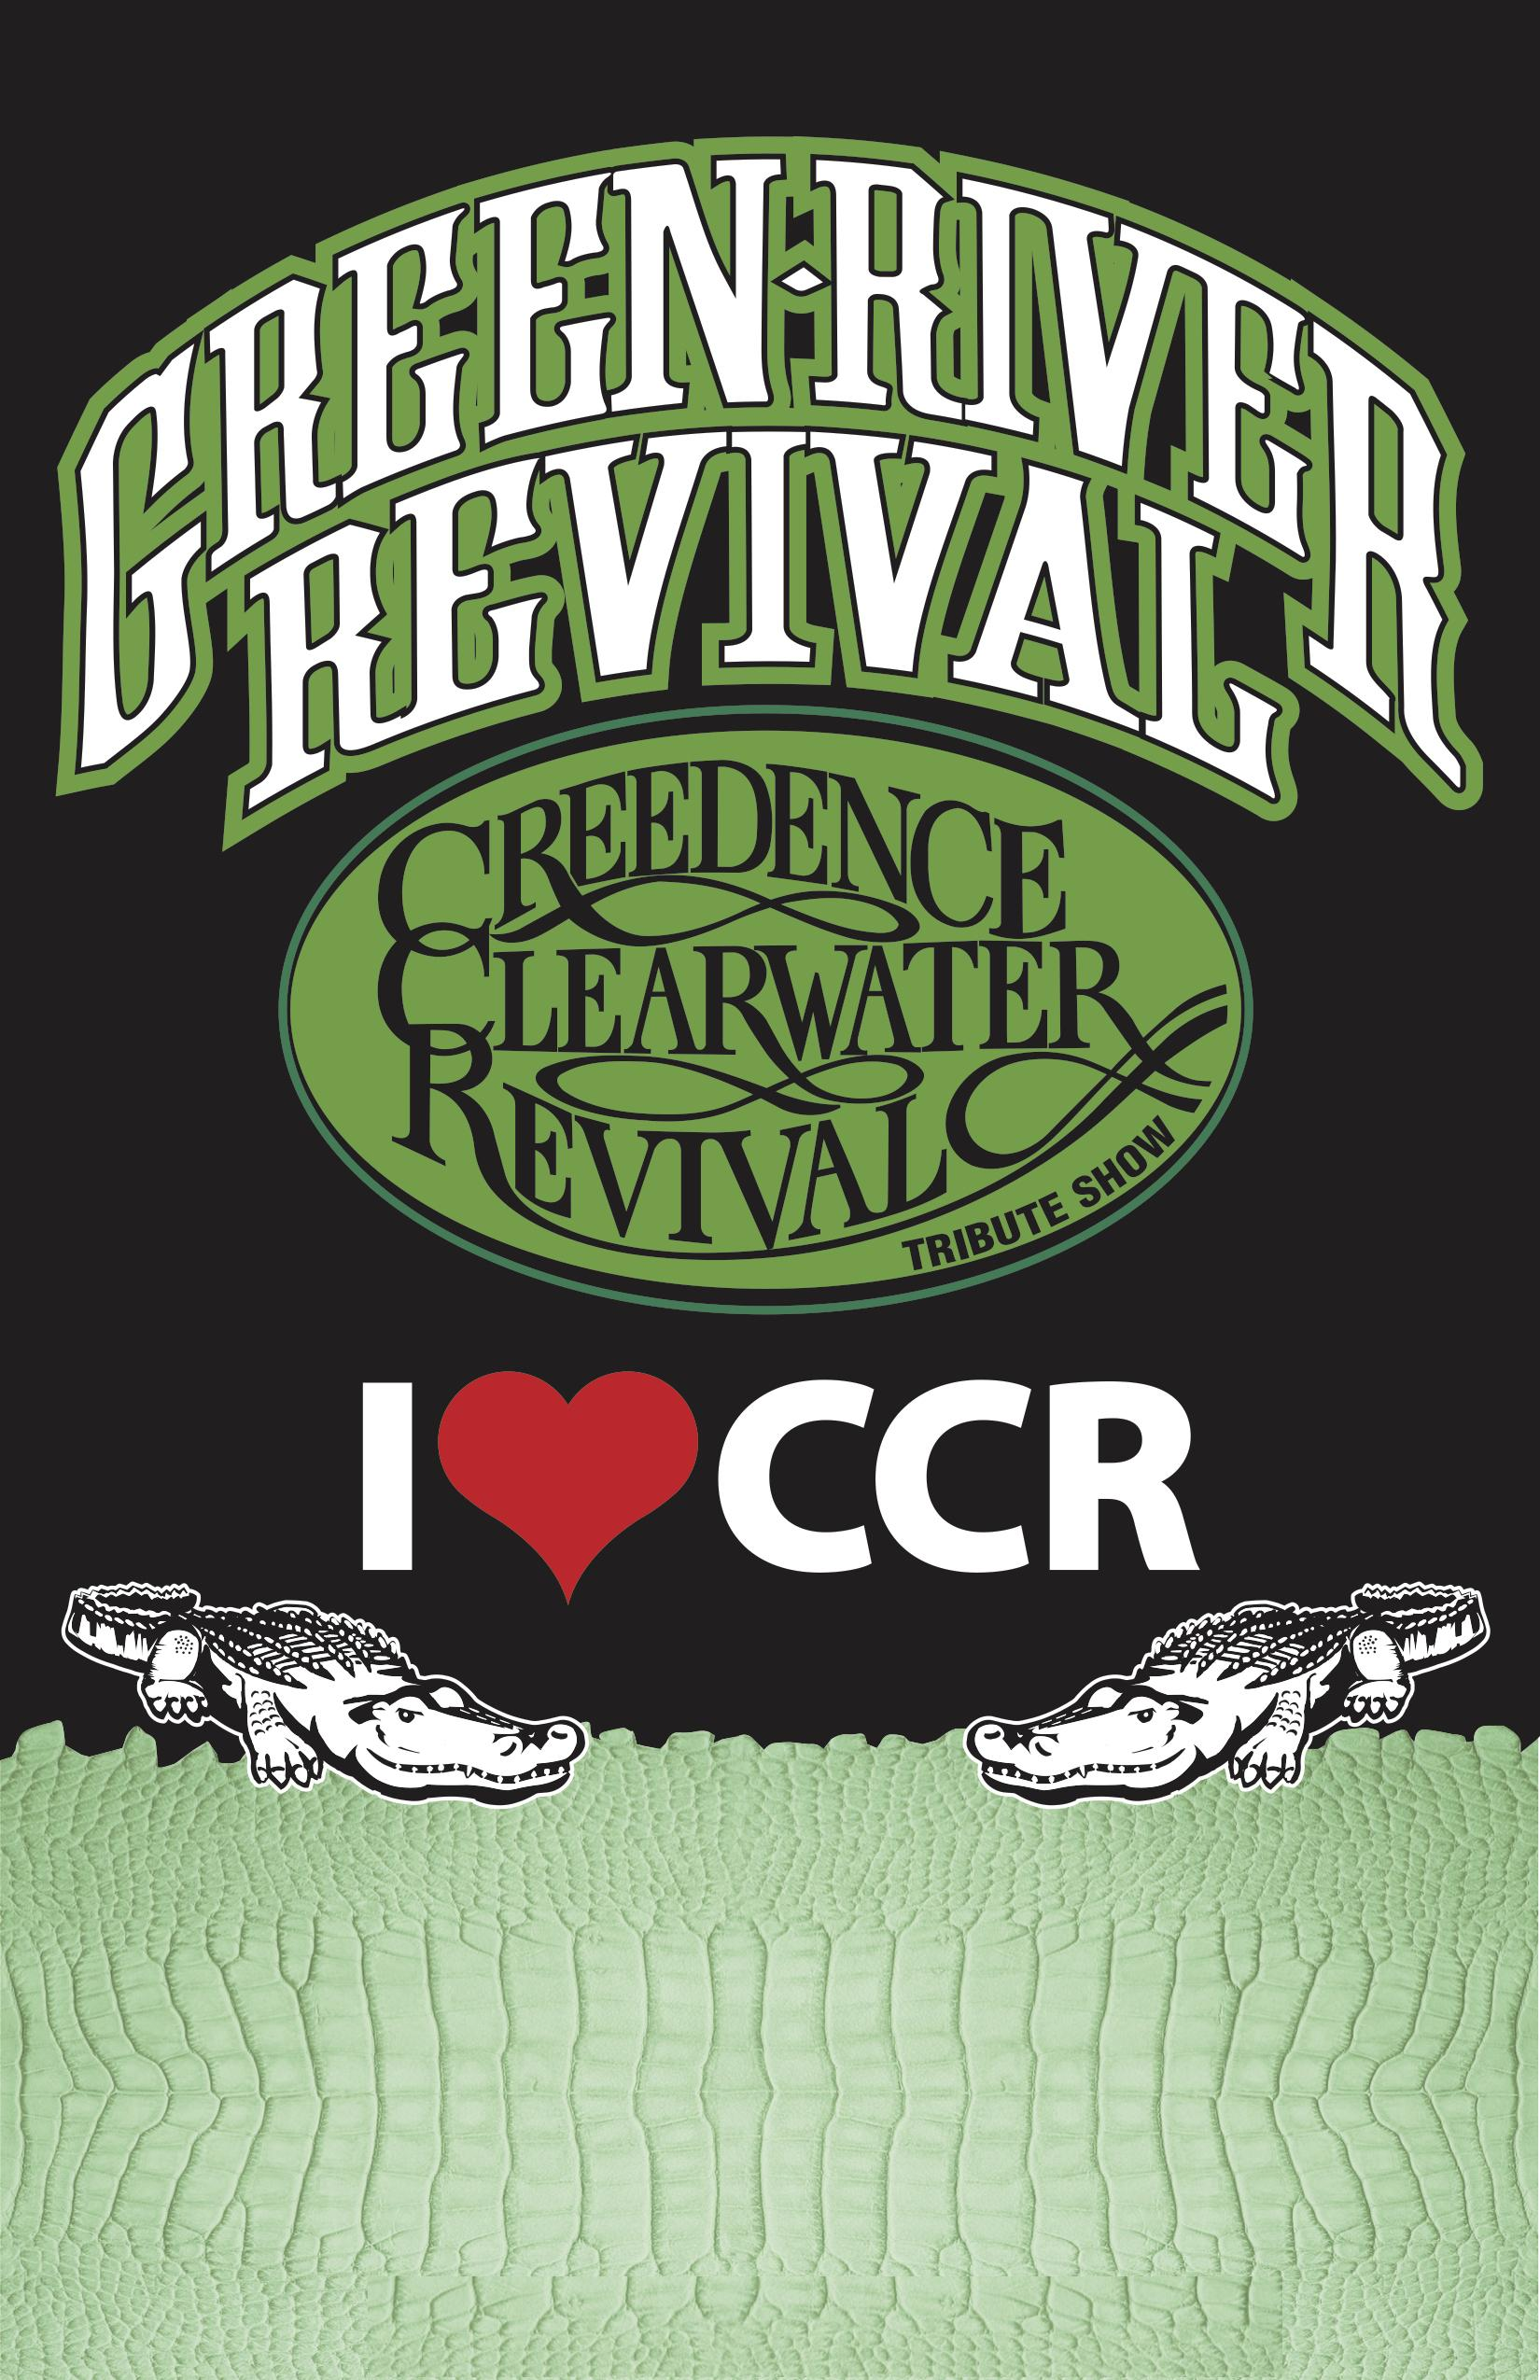 Rough Rider Lager : The Event Beer presents Green River Revival